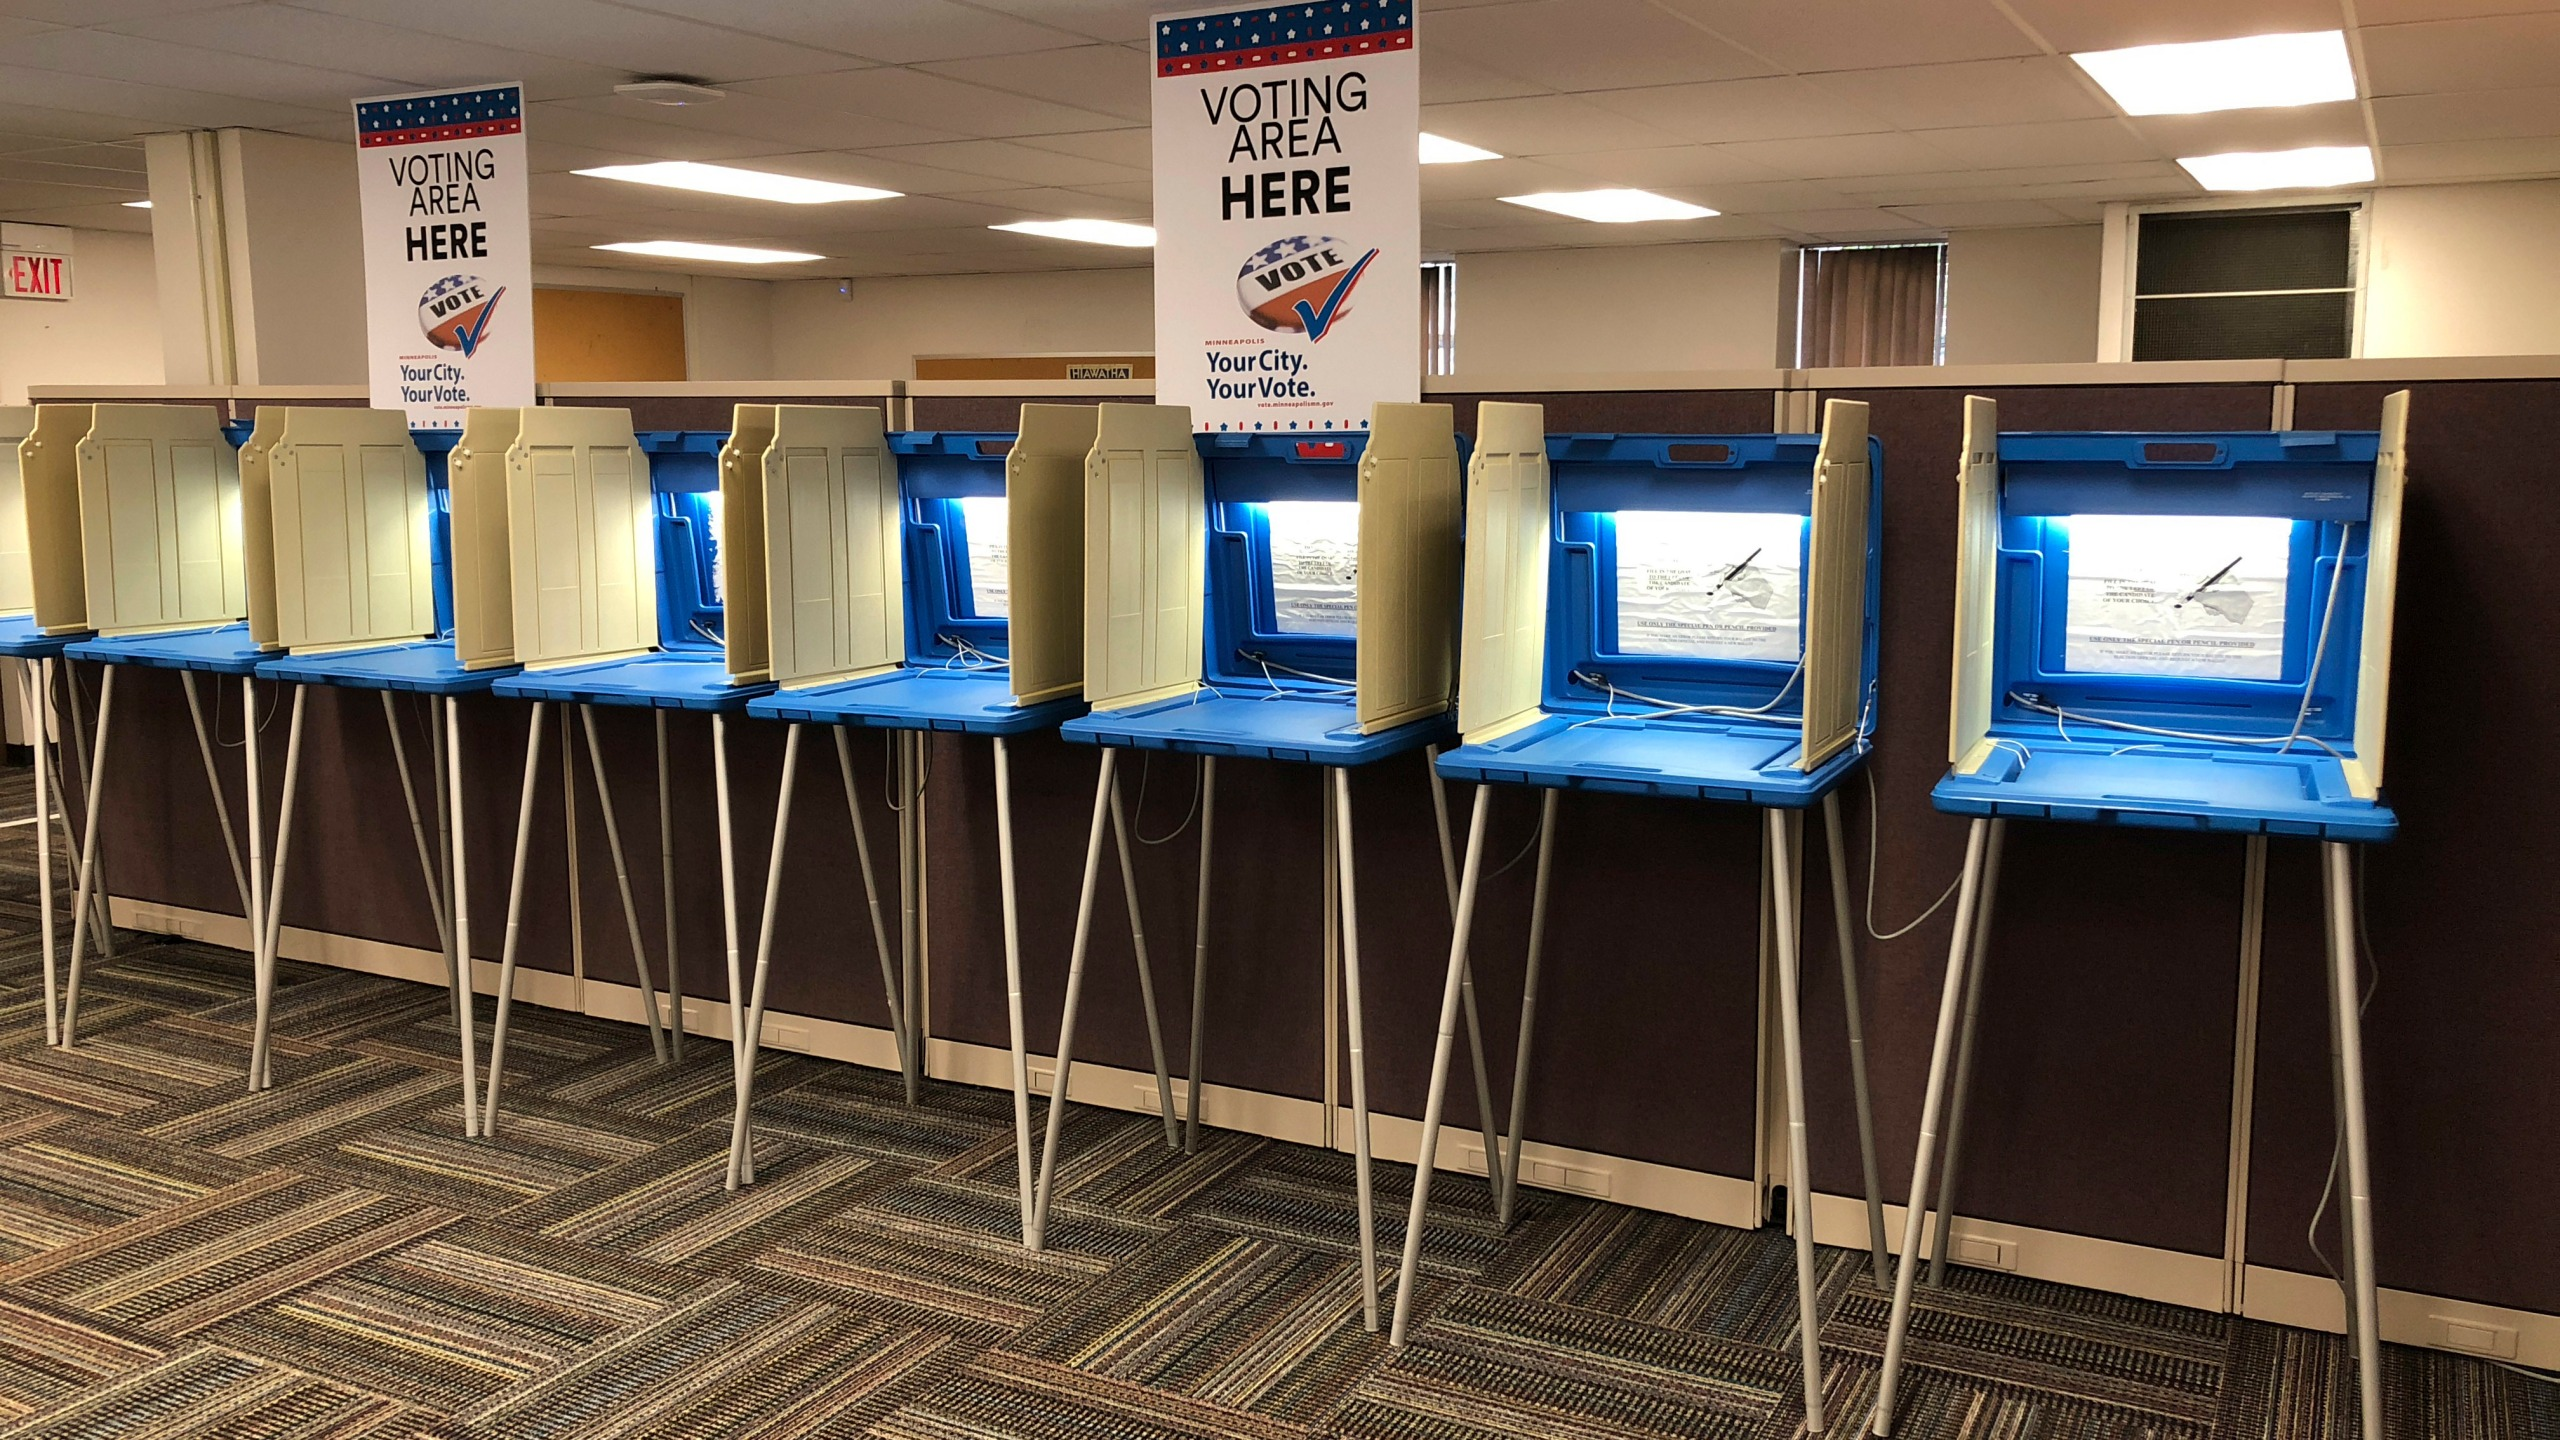 Election_2018_Early_Voting_31622-159532.jpg49044132